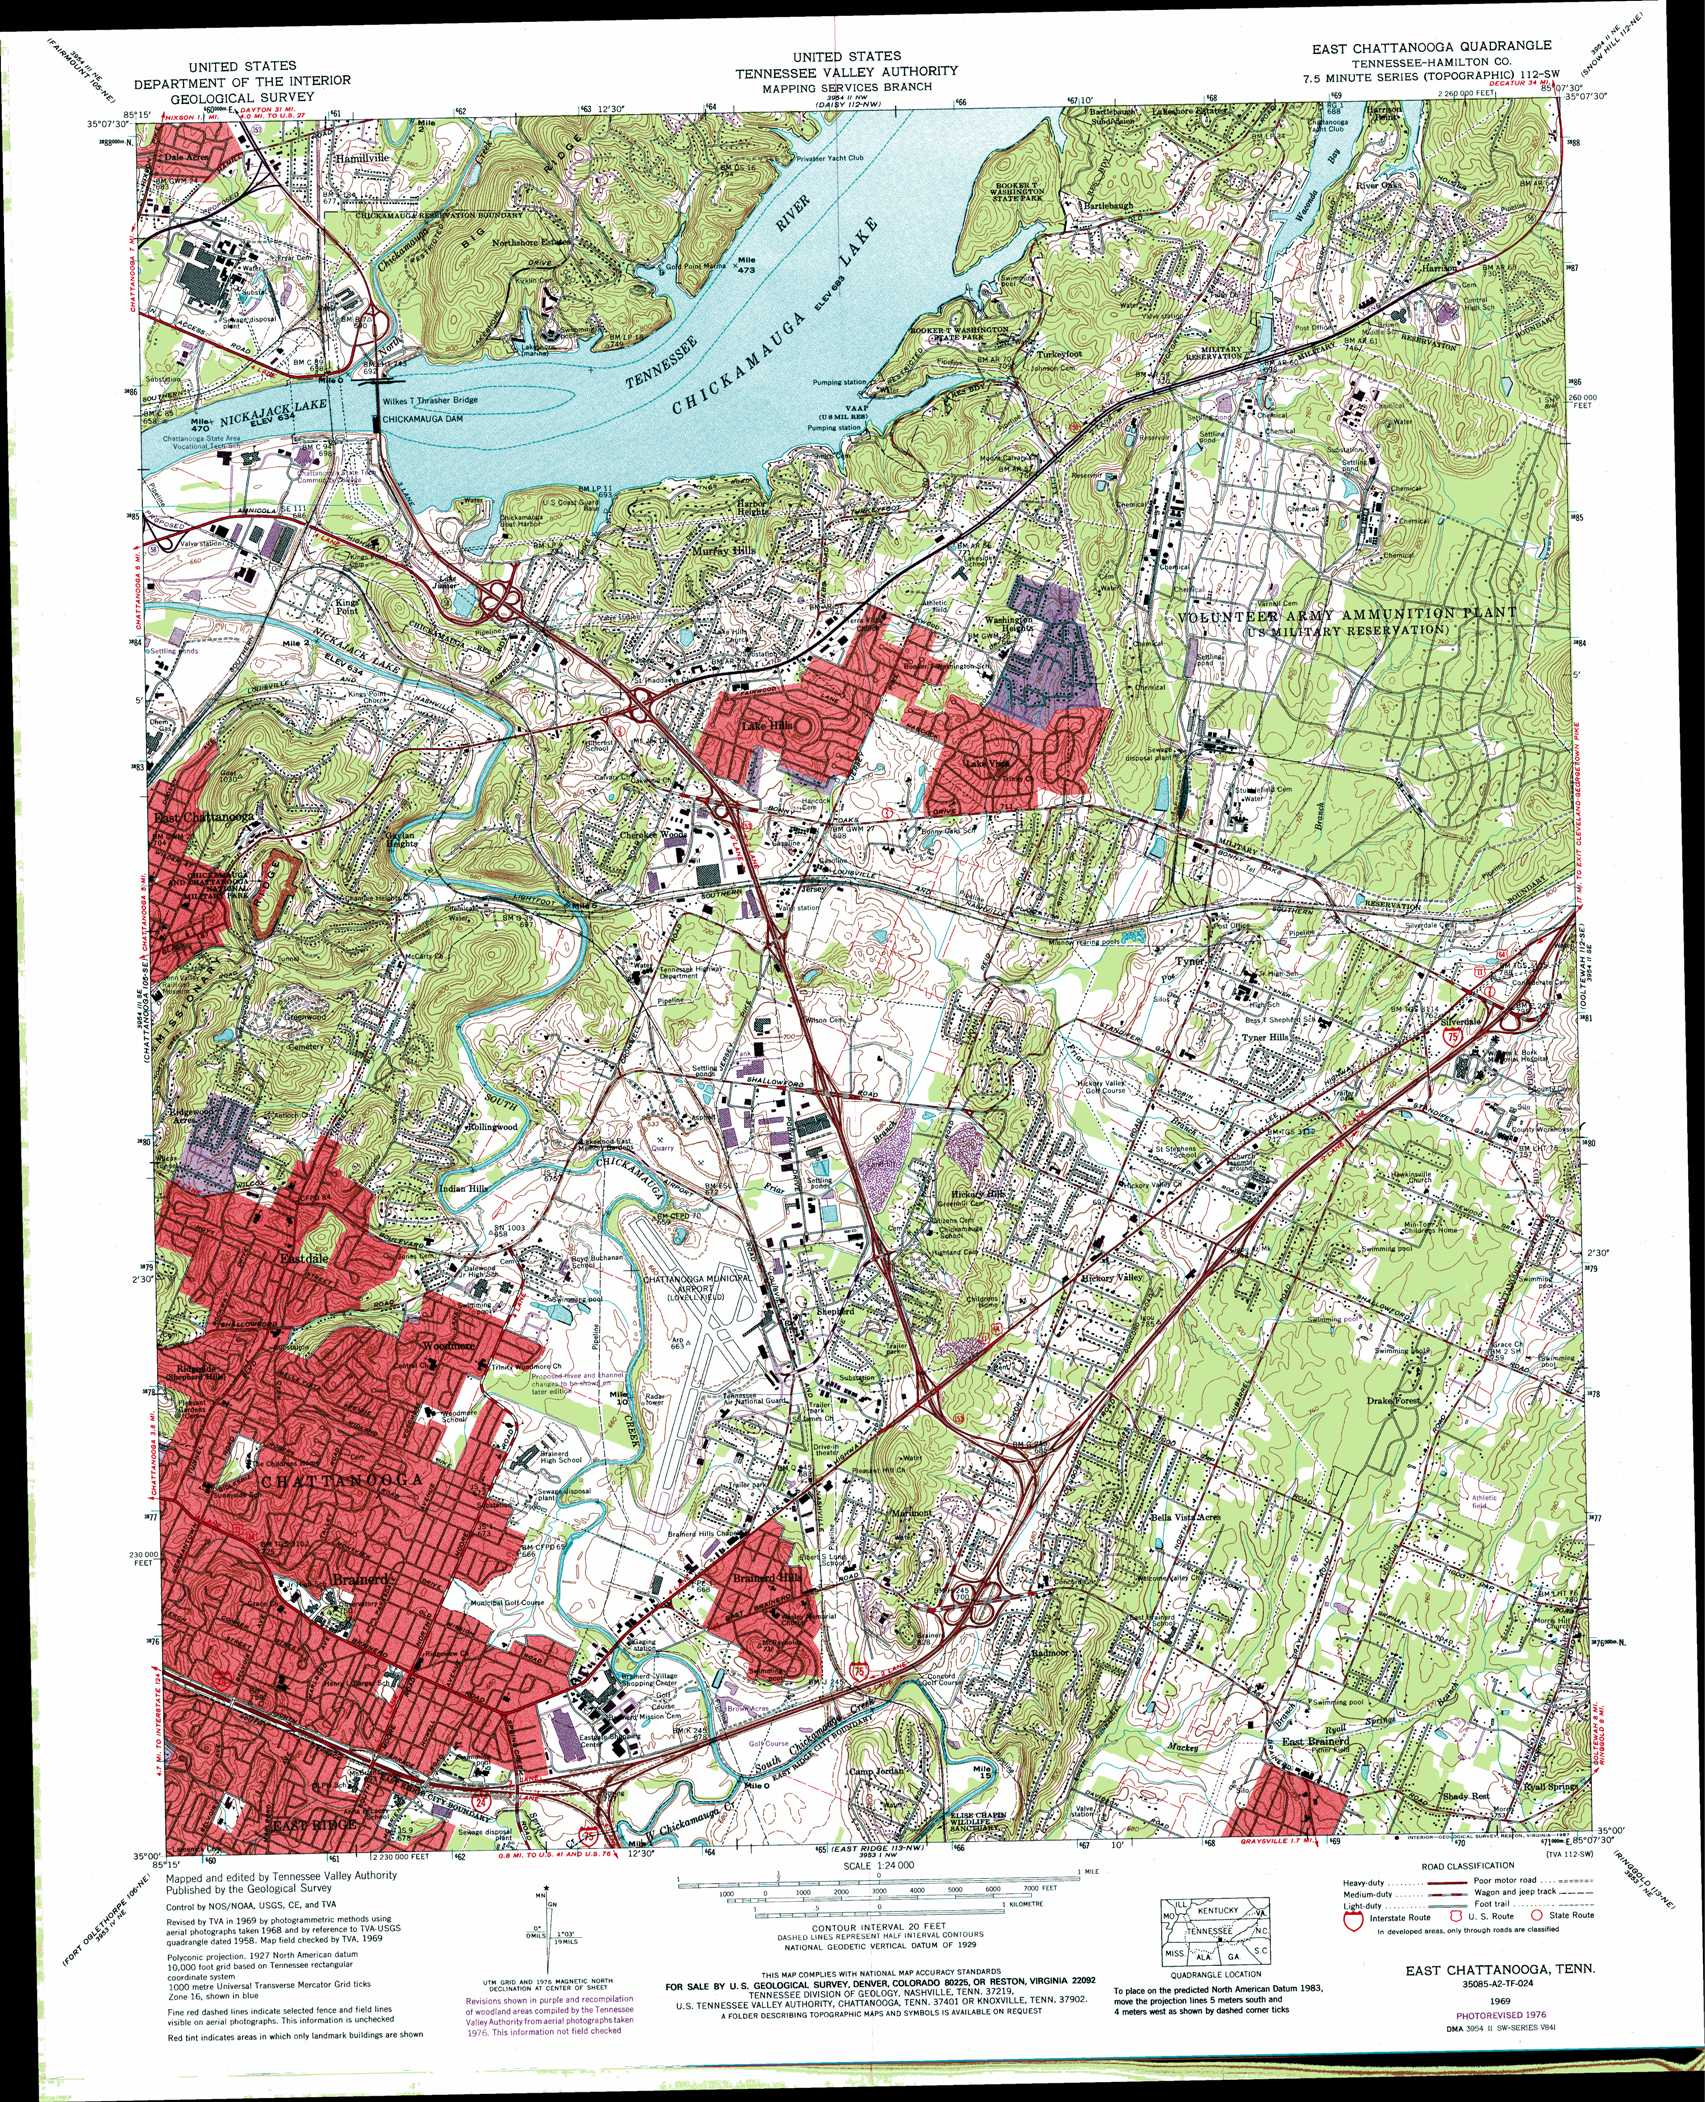 East Chattanooga topographic map TN USGS Topo Quad 35085a2